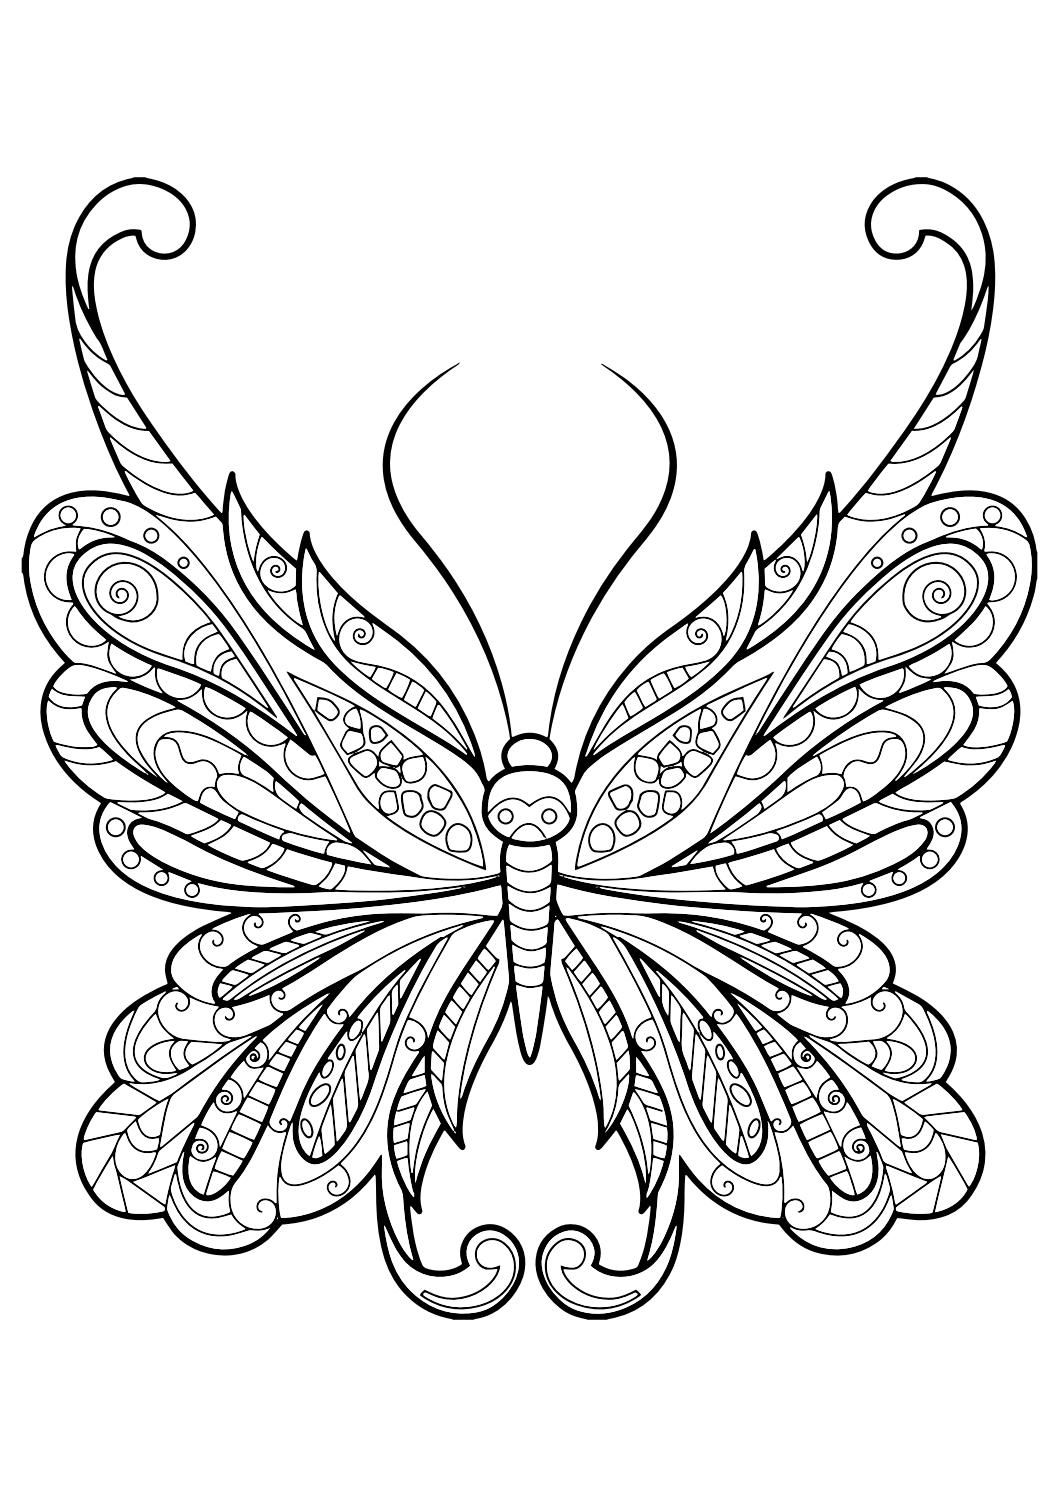 A Coloring Page Of A Butterfly Butterfly Coloring Pages Preschool